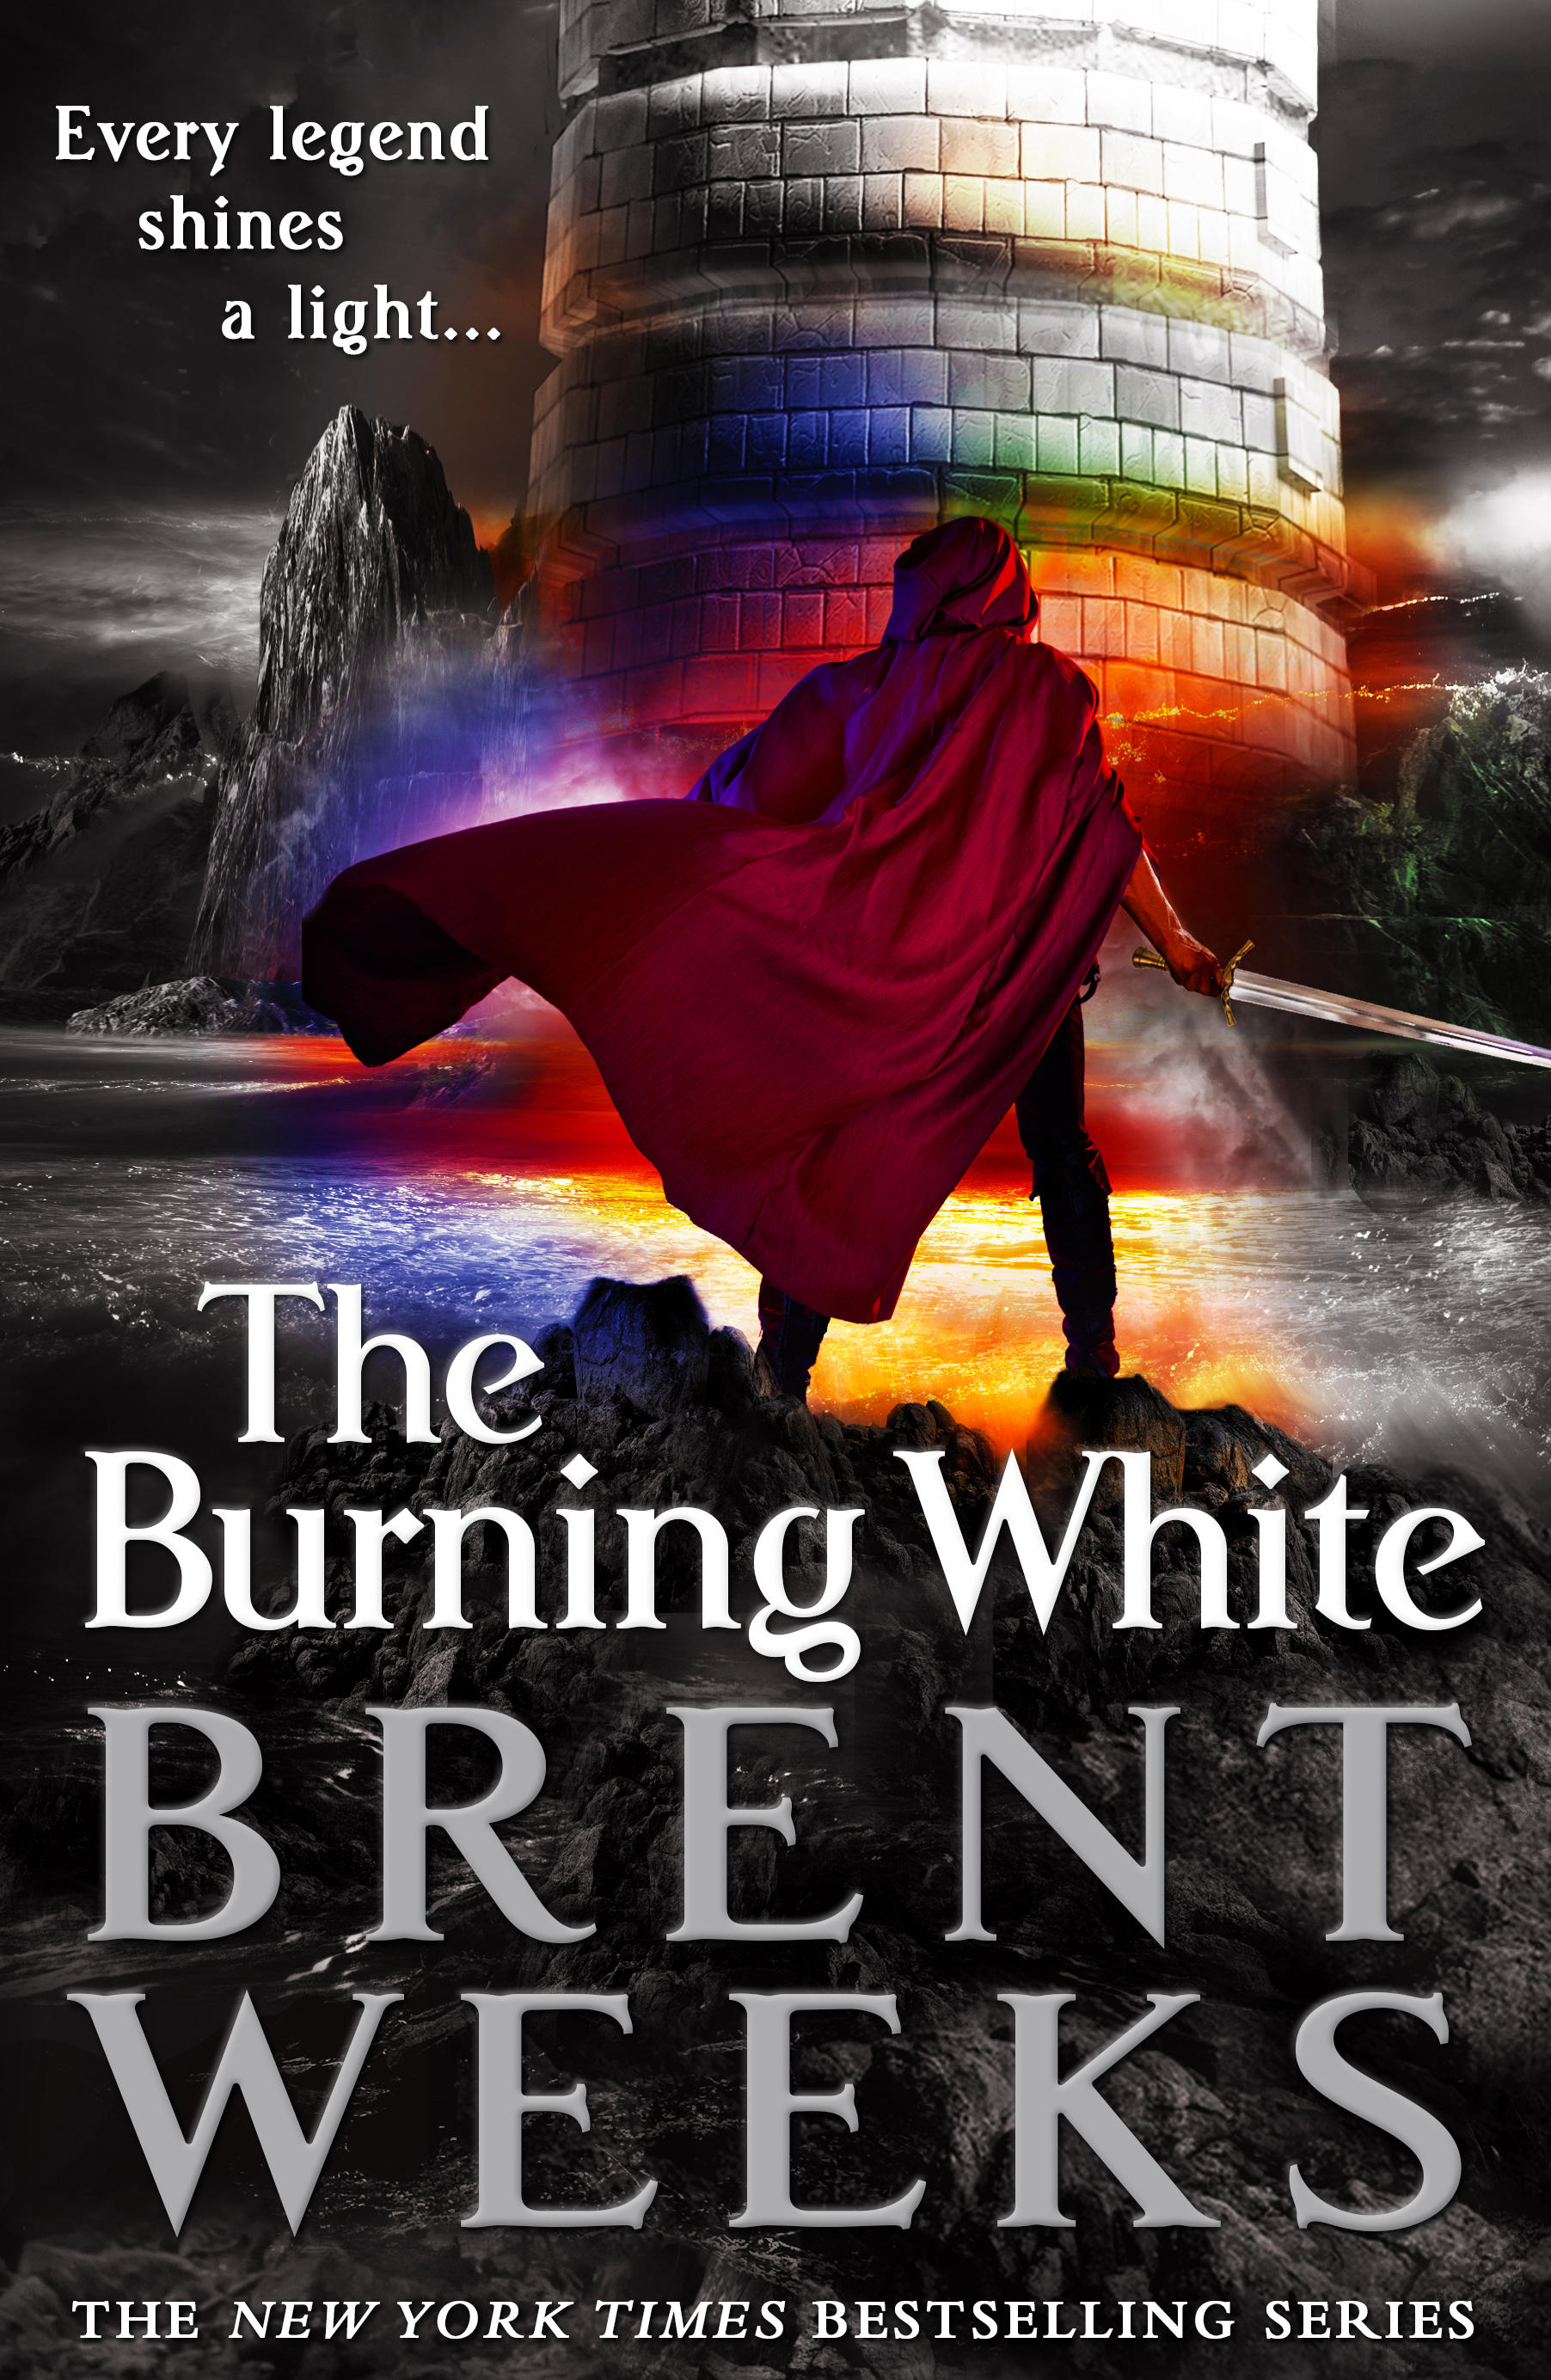 The cover image to The Burning White by Brent Weeks